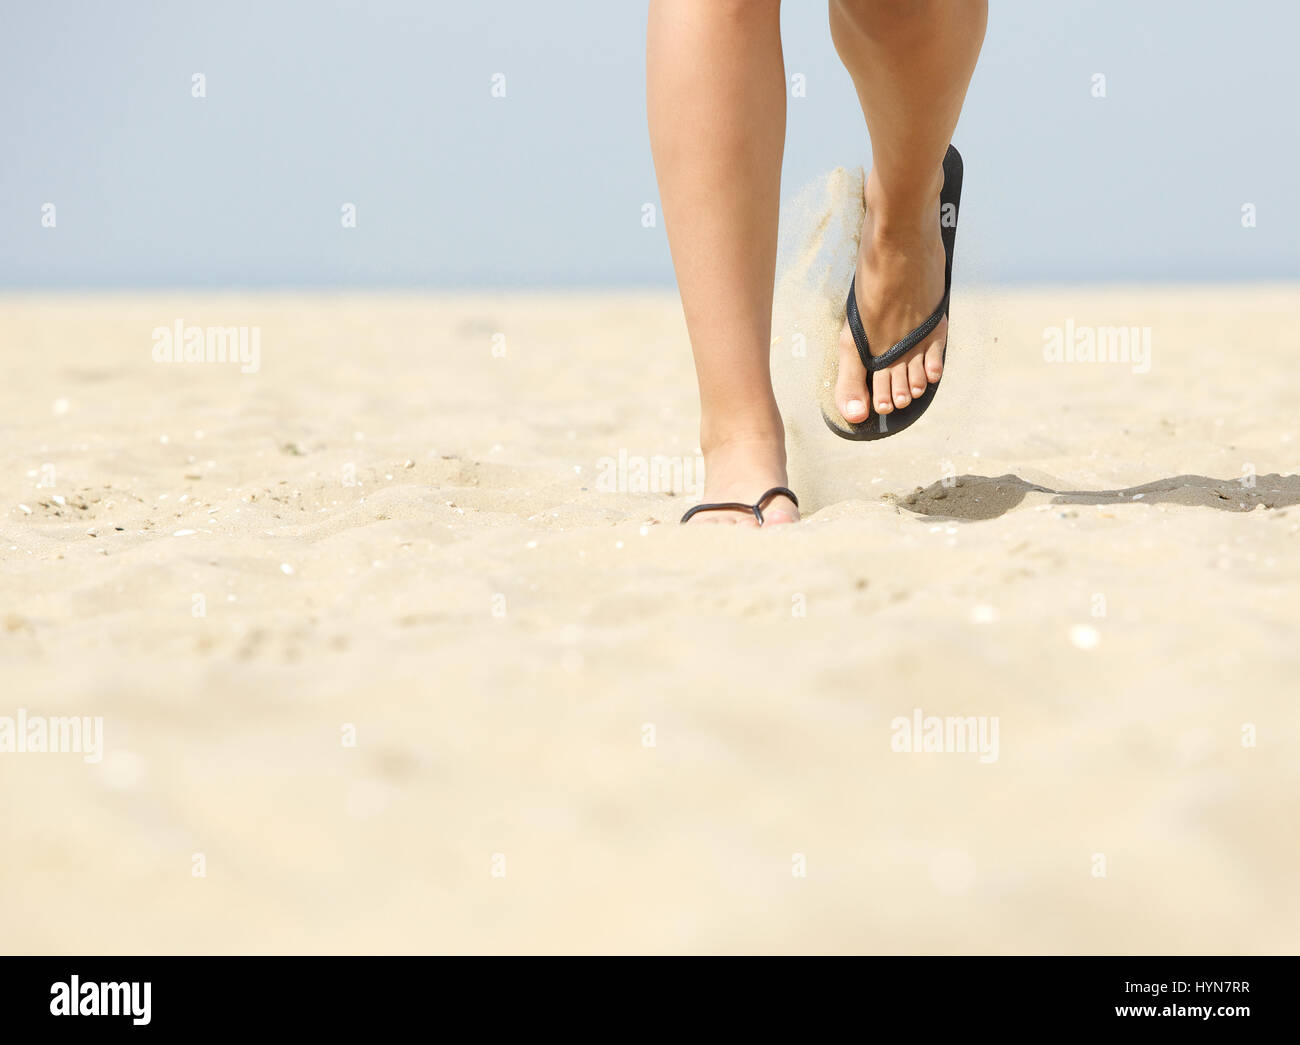 6b068fb271b613 Low angle view of woman feet walking forward in flip flops on beach ...